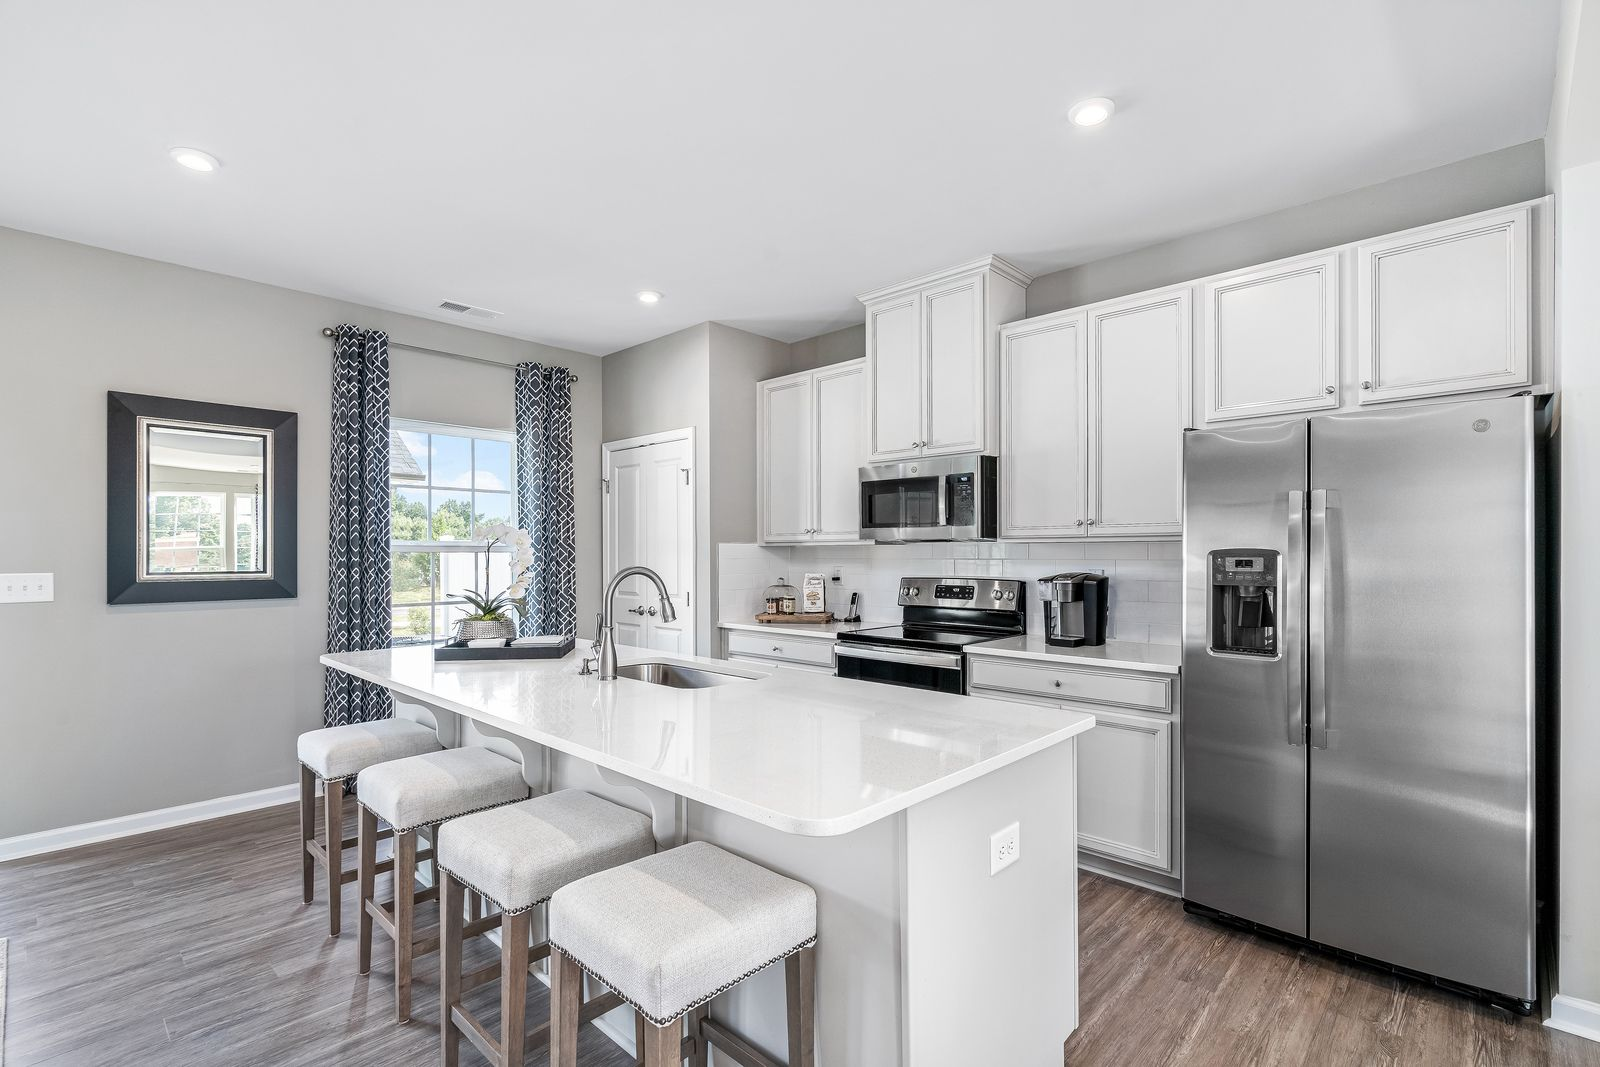 WELCOME TO ARMSTRONG VILLAGE IN UPPER MARLBORO!:Garage townhomes with the convenient location you want right off MD-4/Penn Ave. starting from the low $400s.Schedule an appointment today!